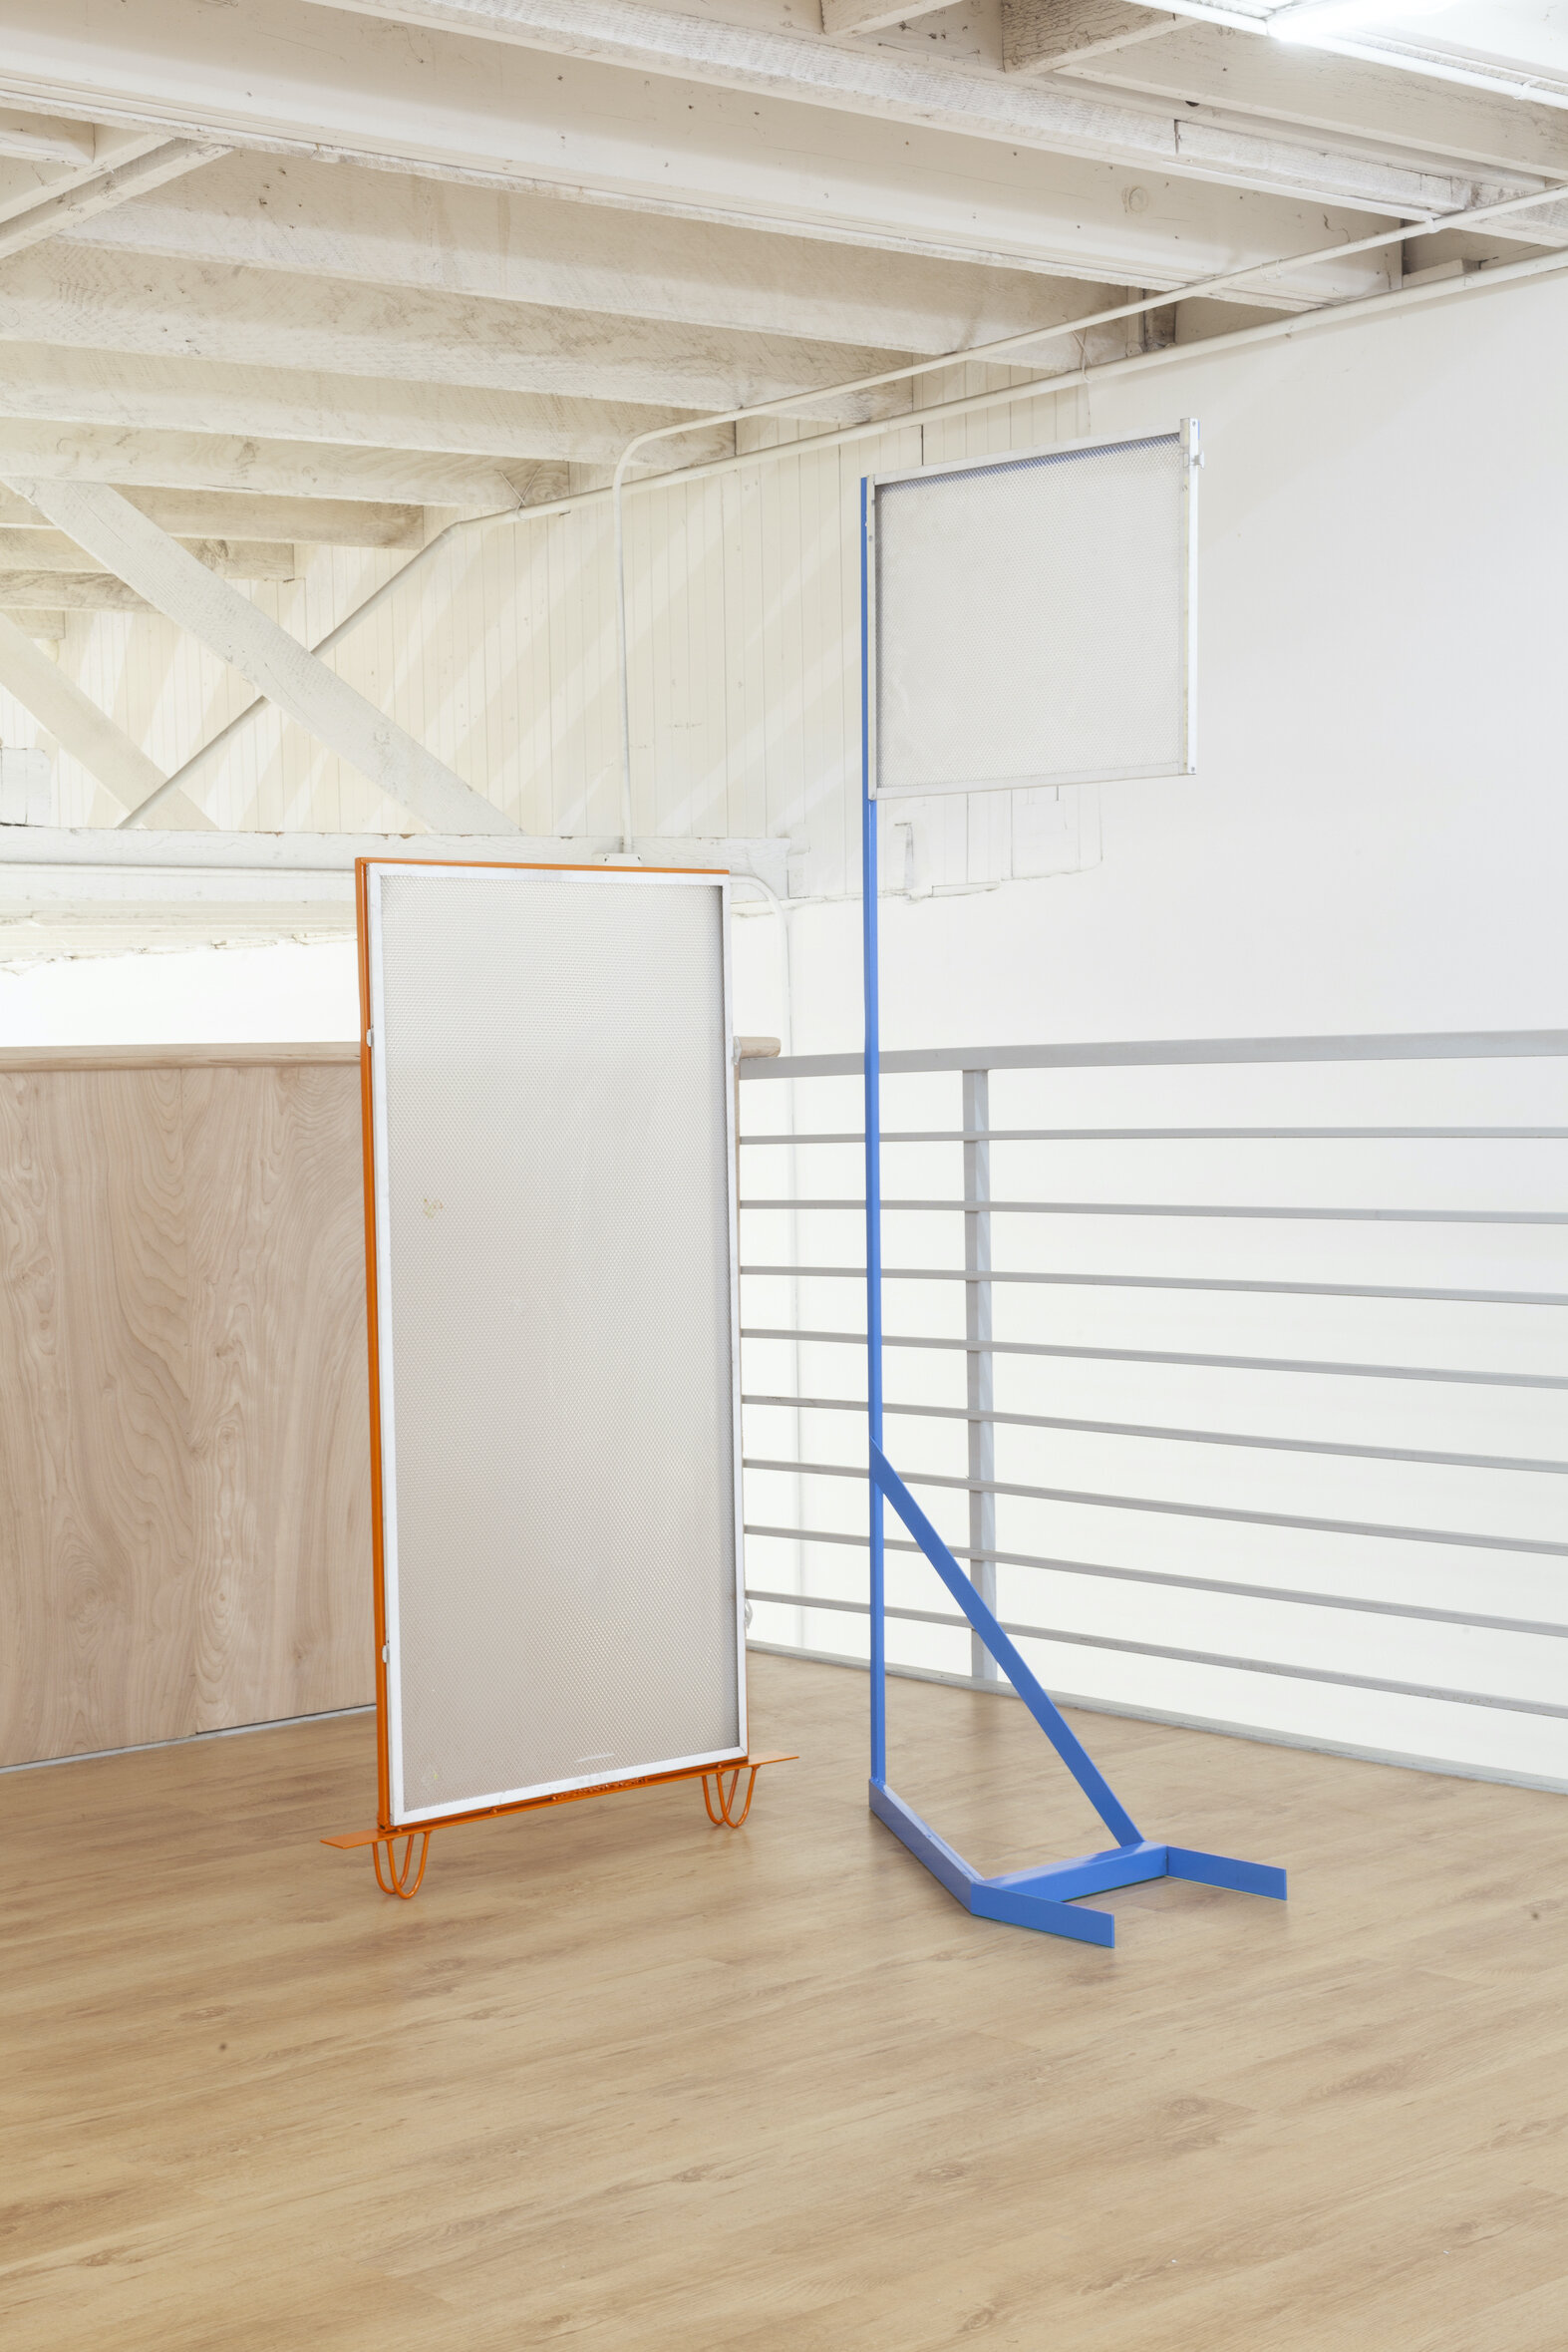 The discreet charm of the ostrich syndrome 1,  2019, Powder coated steel, salvaged fluorescent light cover, 23 x 72 x 12 inches  The discreet charm of the ostrich syndrome 2,  2019, Powder coated steel, salvaged fluorescent light cover, 24 x 51 x 2 inches